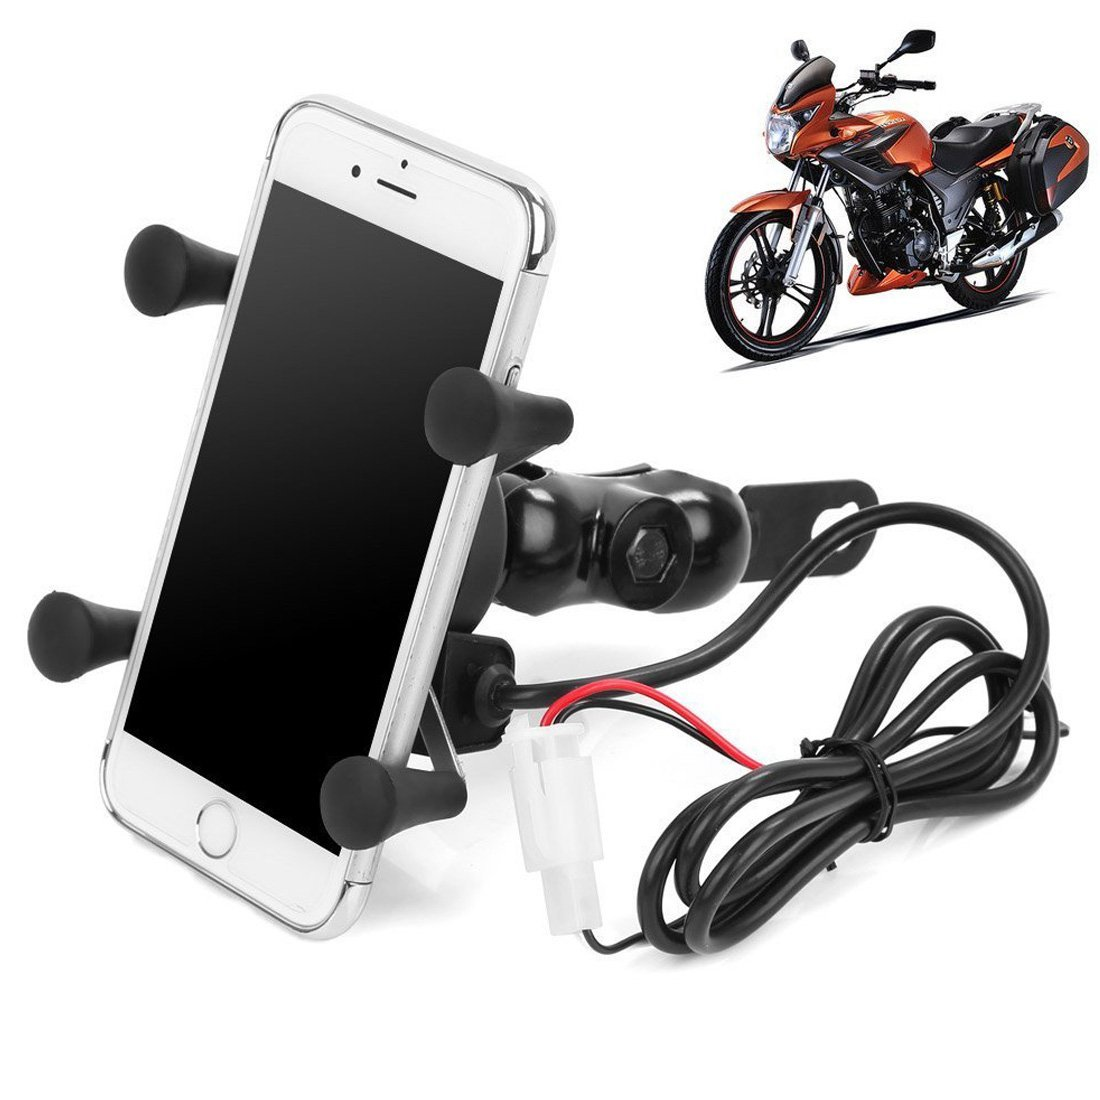 Motorcycle Phone X Grip, Motorcycle Phone Holder with USB Charger, Rerii Motorcycle Phone Mount, Mobile Phone Holder, Mount, USB Charging for iPhone, Samsung Galaxy, HTC, Huawei and More